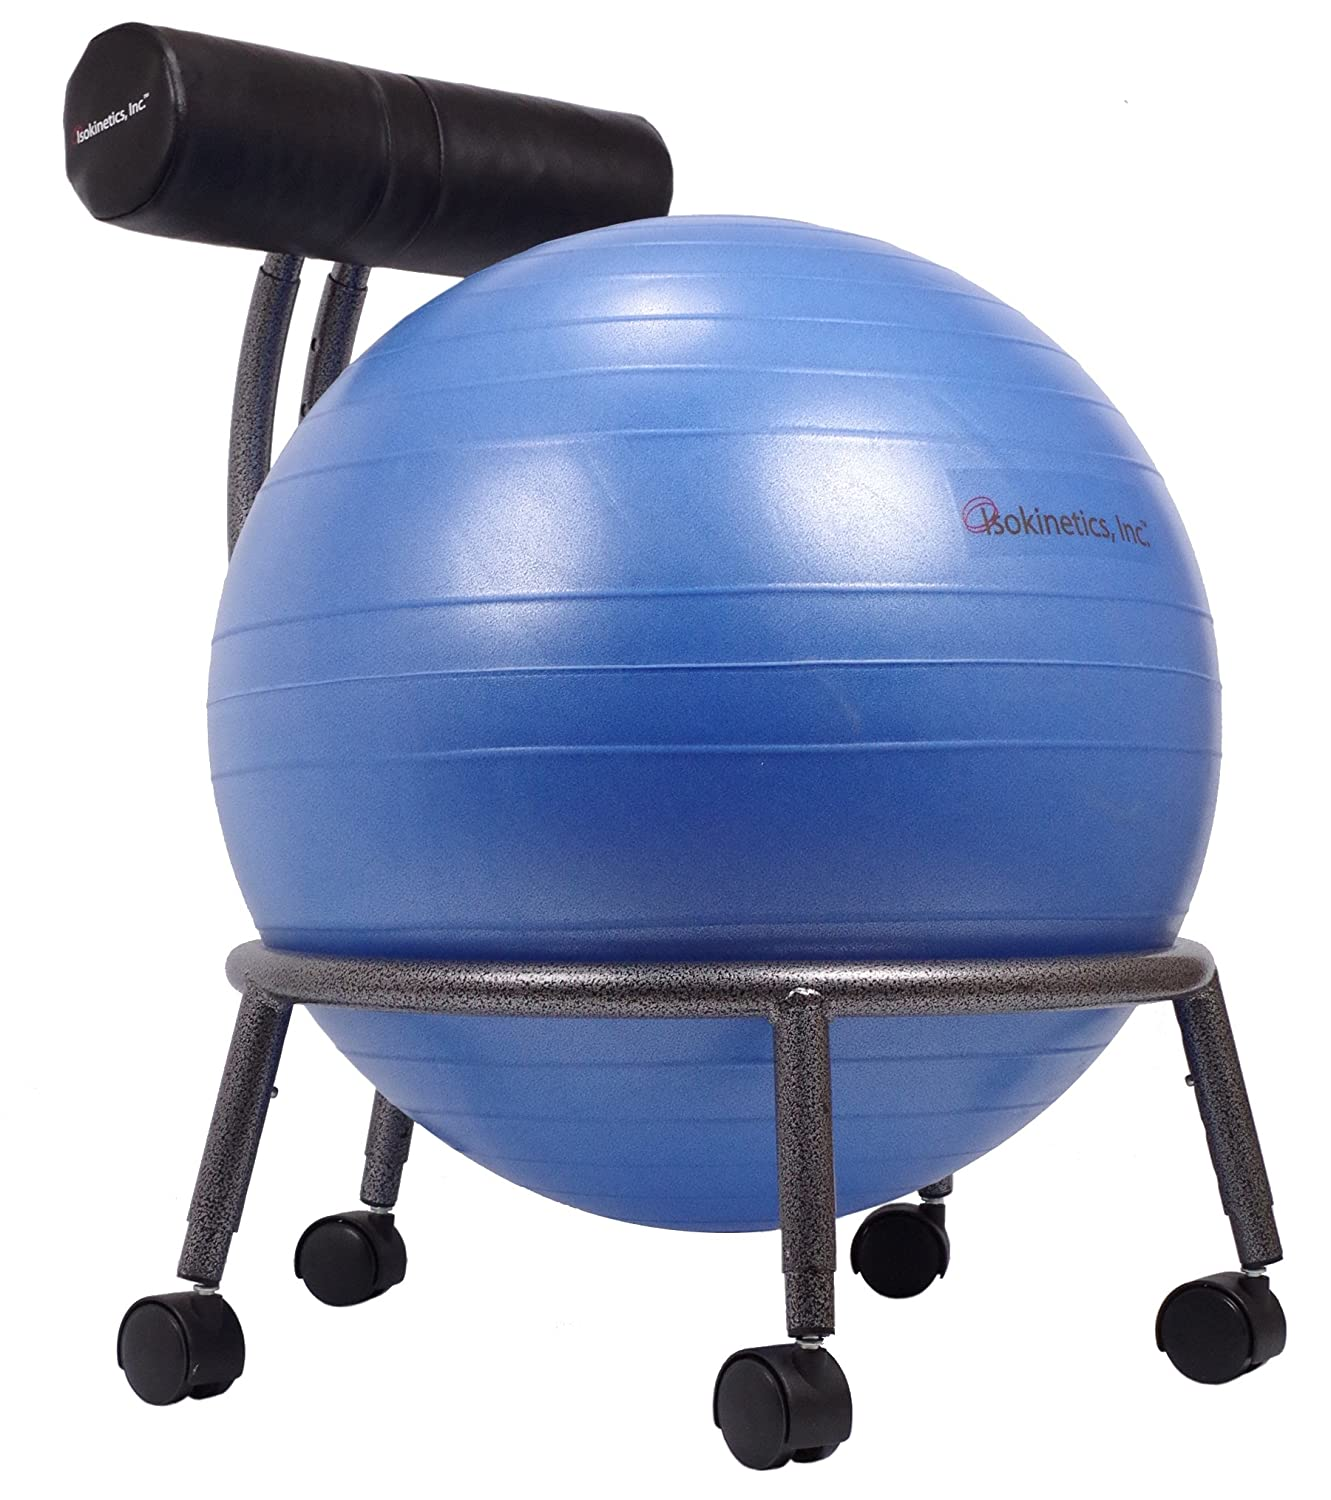 Isokinetics Adjustable Balance Ball Chair